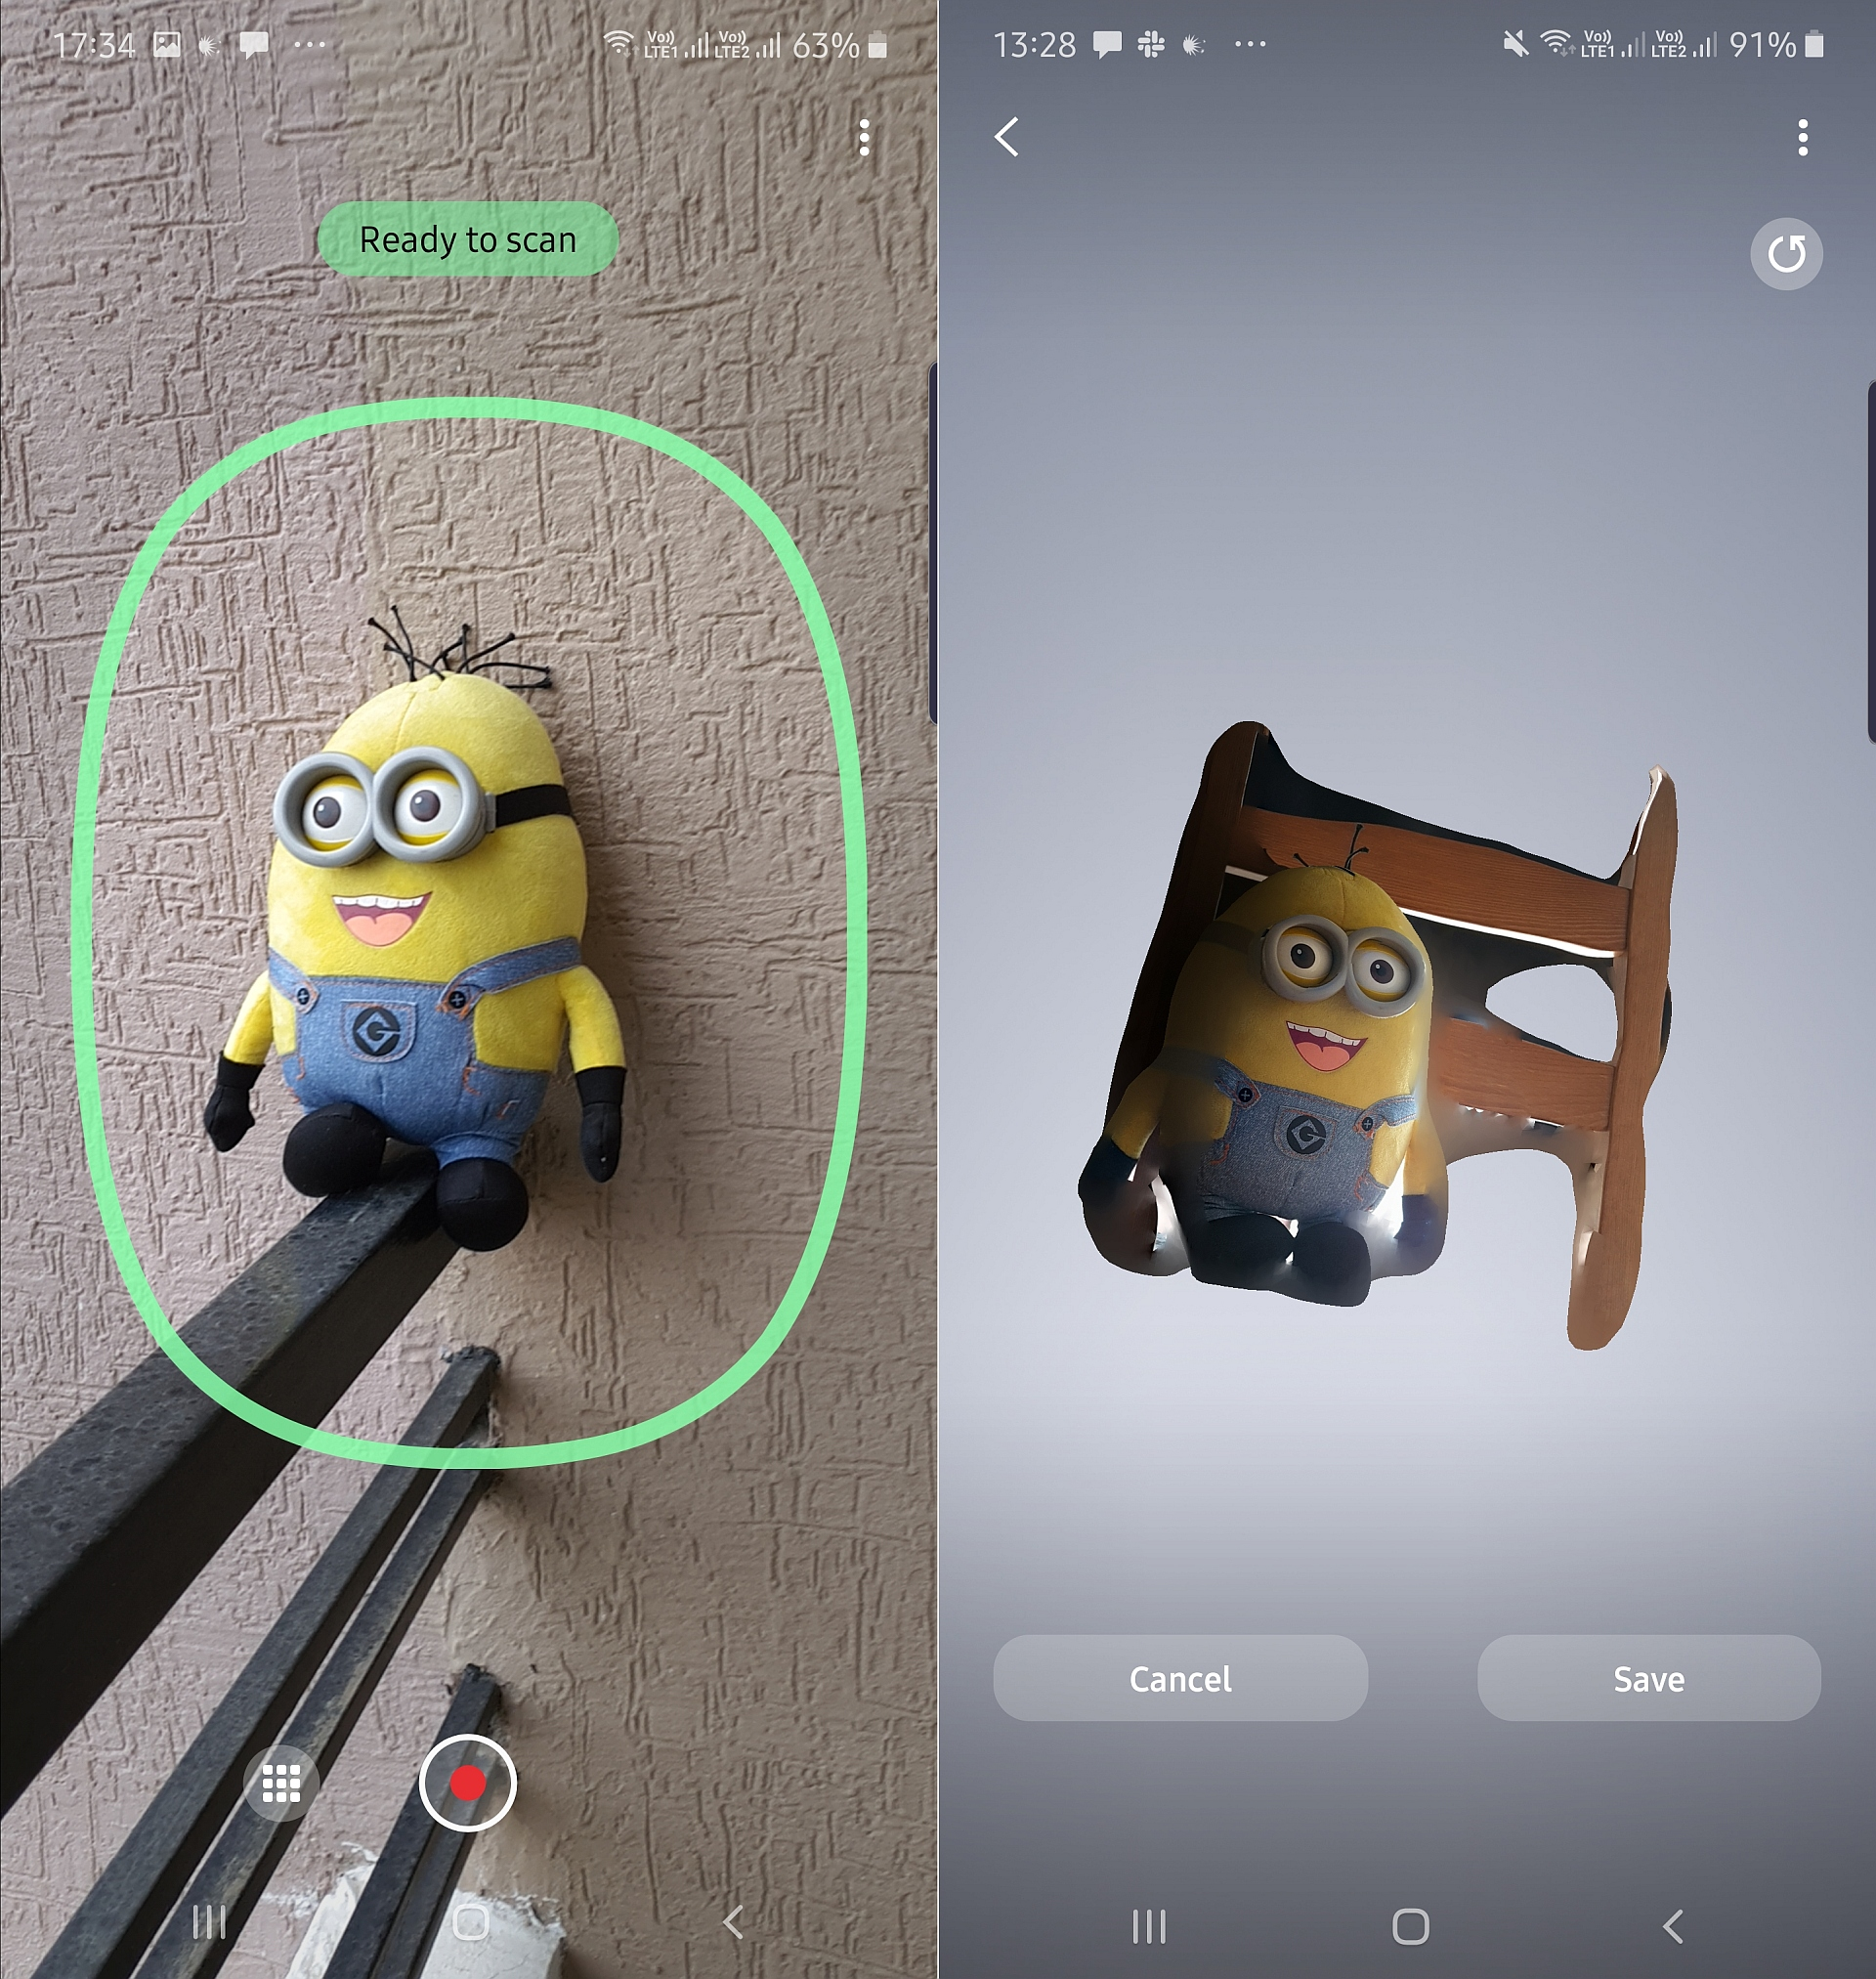 Galaxy Note 10+ 3D scanner app now available on the Galaxy